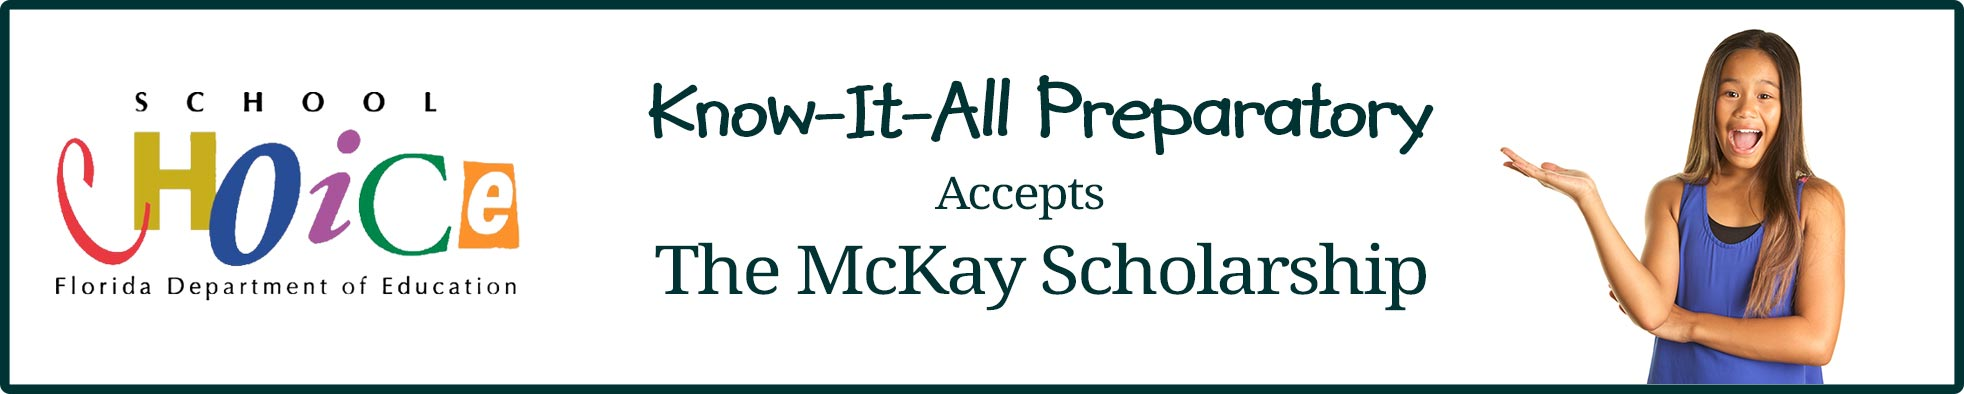 We Accept the McKay Scholarship